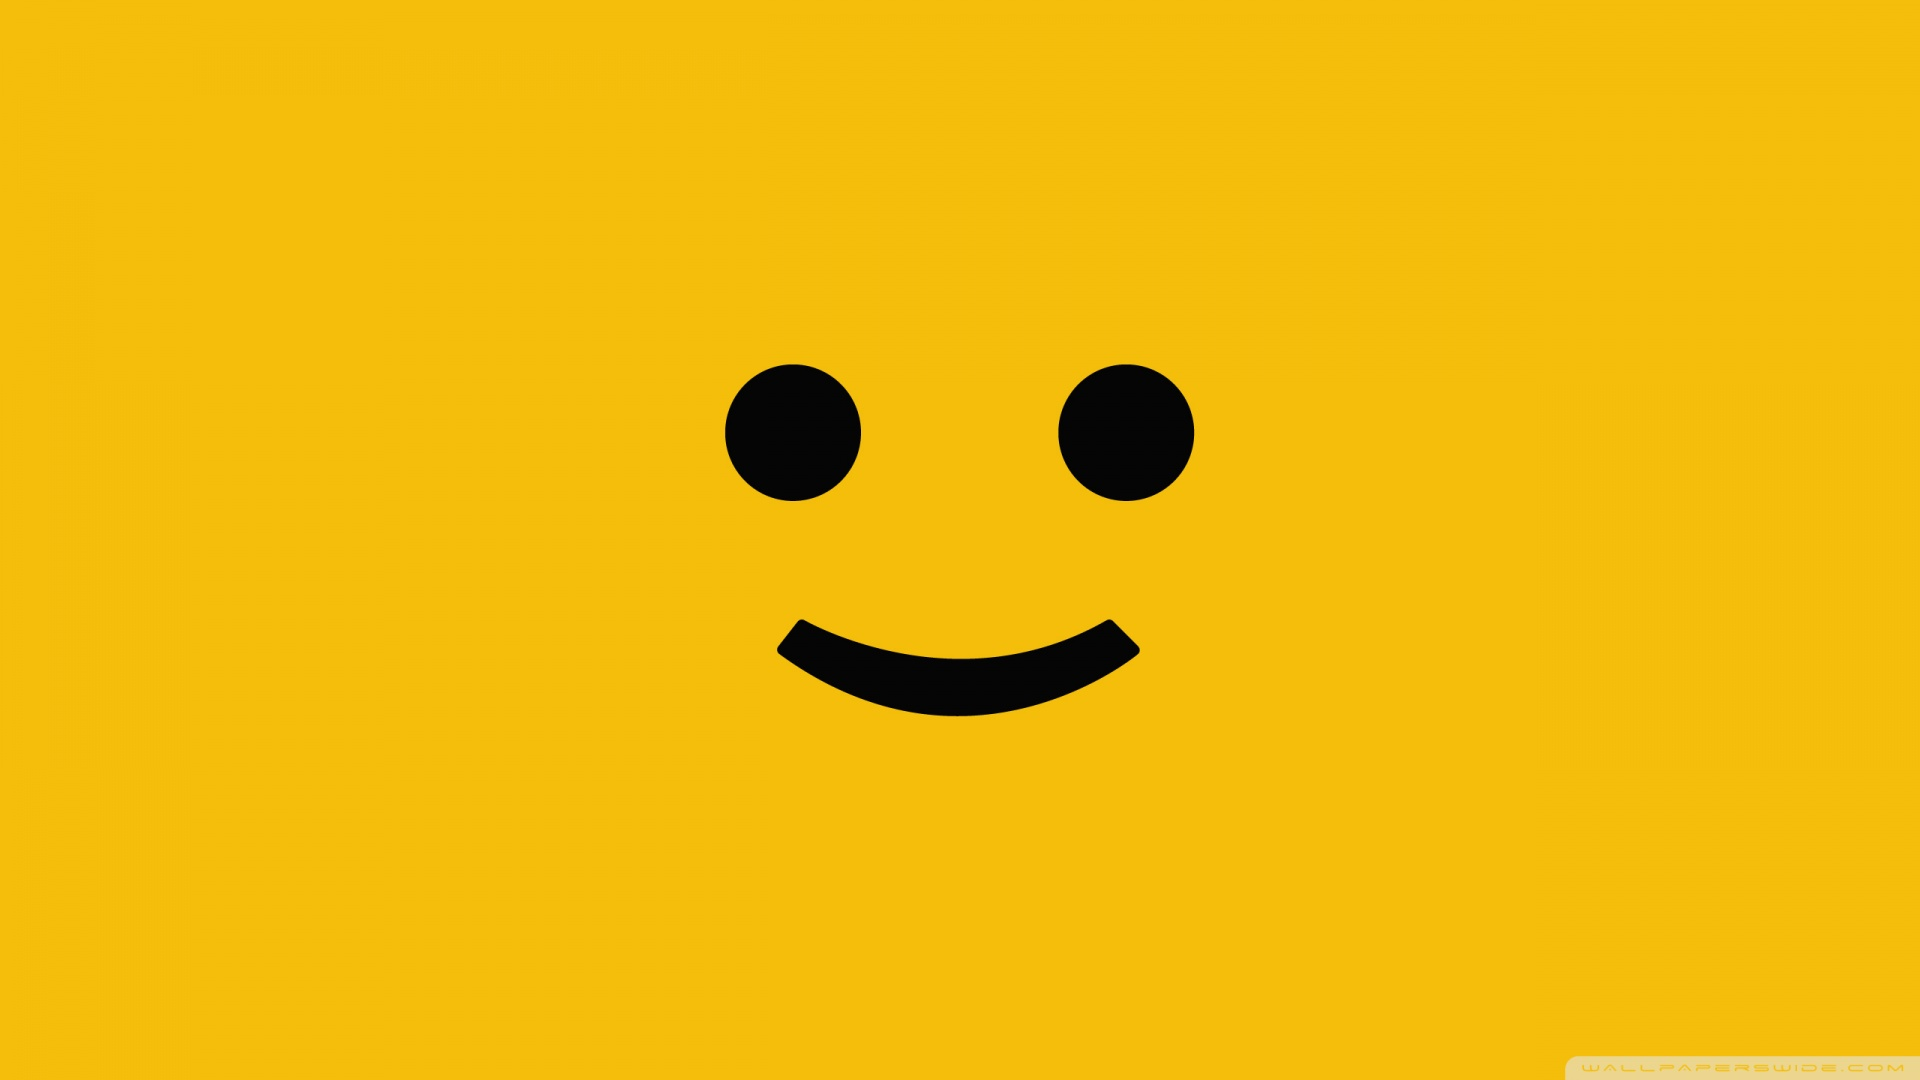 Download Smiley Face Background Wallpaper 1920x1080 1920x1080